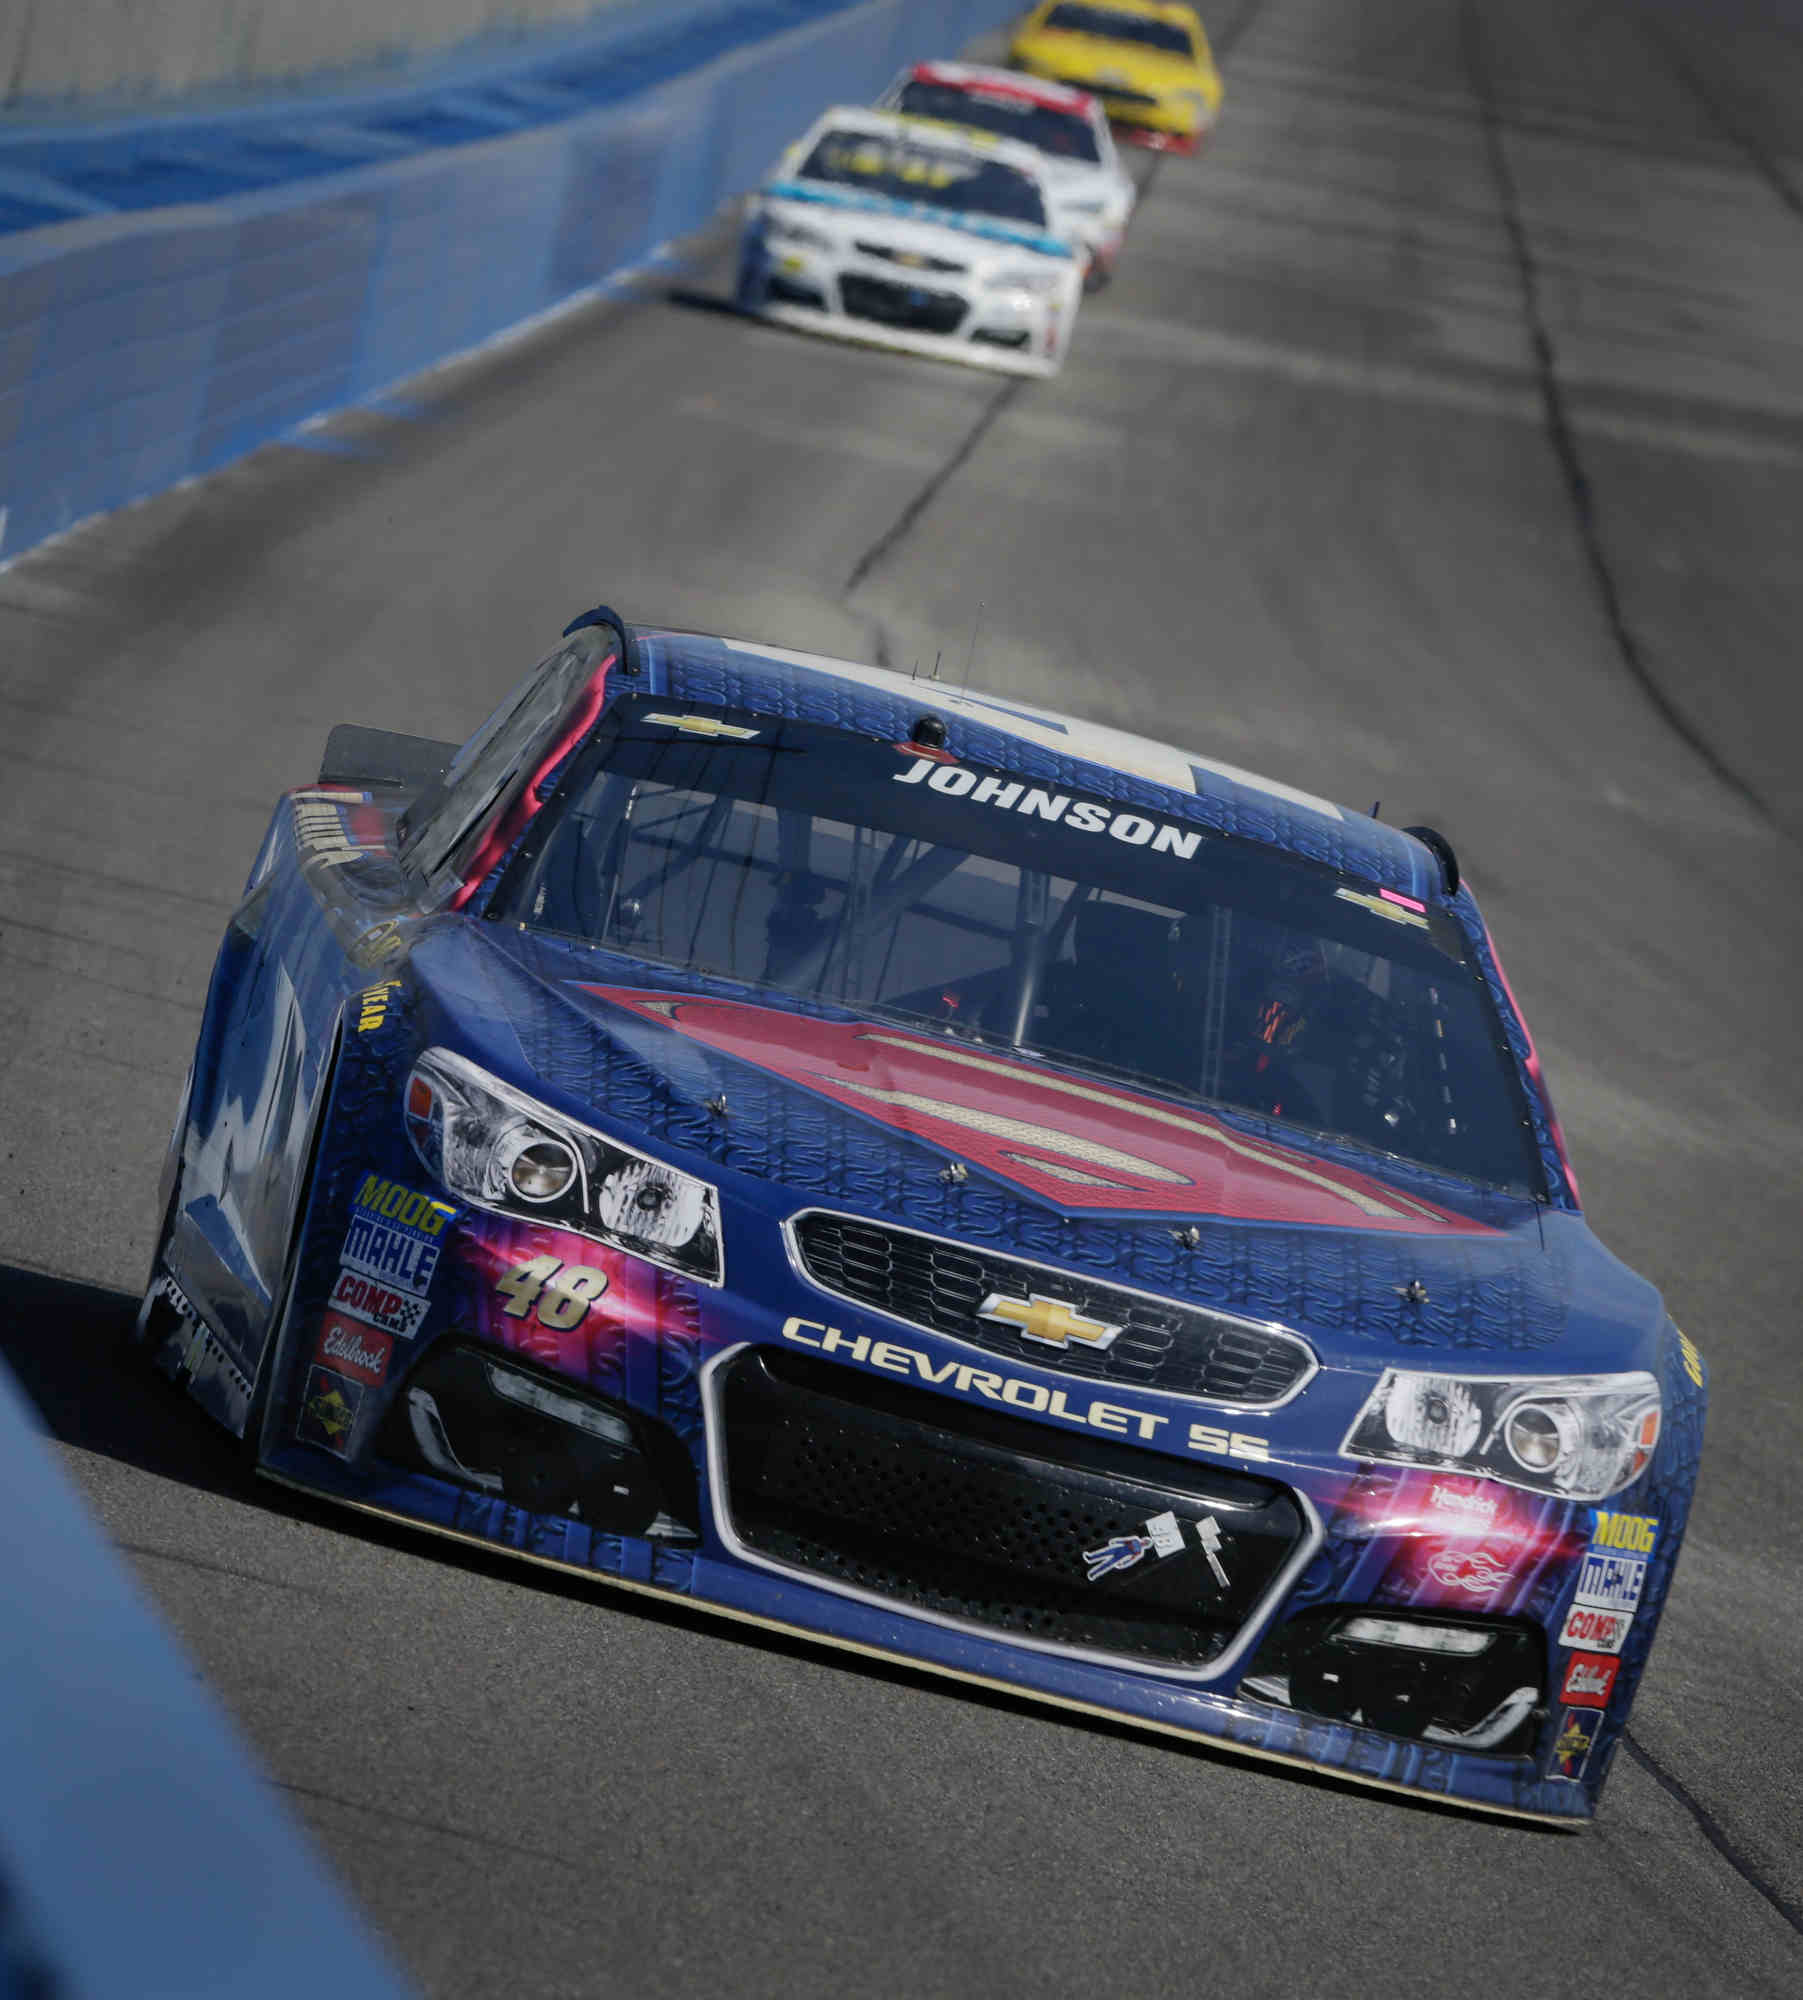 Jimmie Johnson, driver of the #48 LoweÕs/Superman Chevrolet SS, races to his 77th career victory, Sunday, March 20, 2016 in the NASCAR Sprint Cup Series race at Auto Club Speedway in Fontana, California.  (Photo by Garry Eller for Chevy Racing)